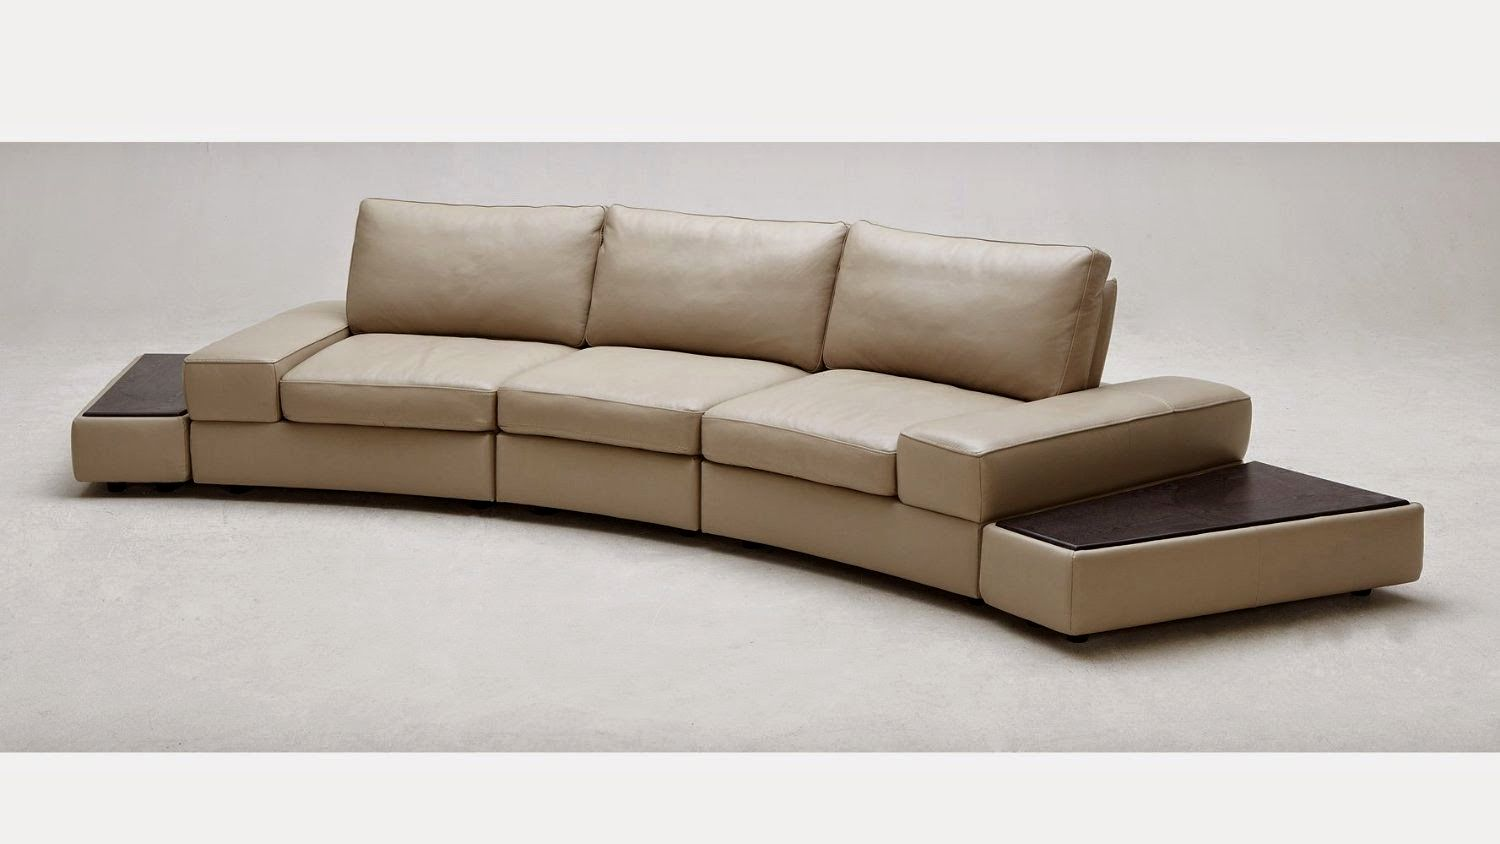 Designer Leather Sofas For Sale Fascinating Leather Sofas For Sale Collection Modern